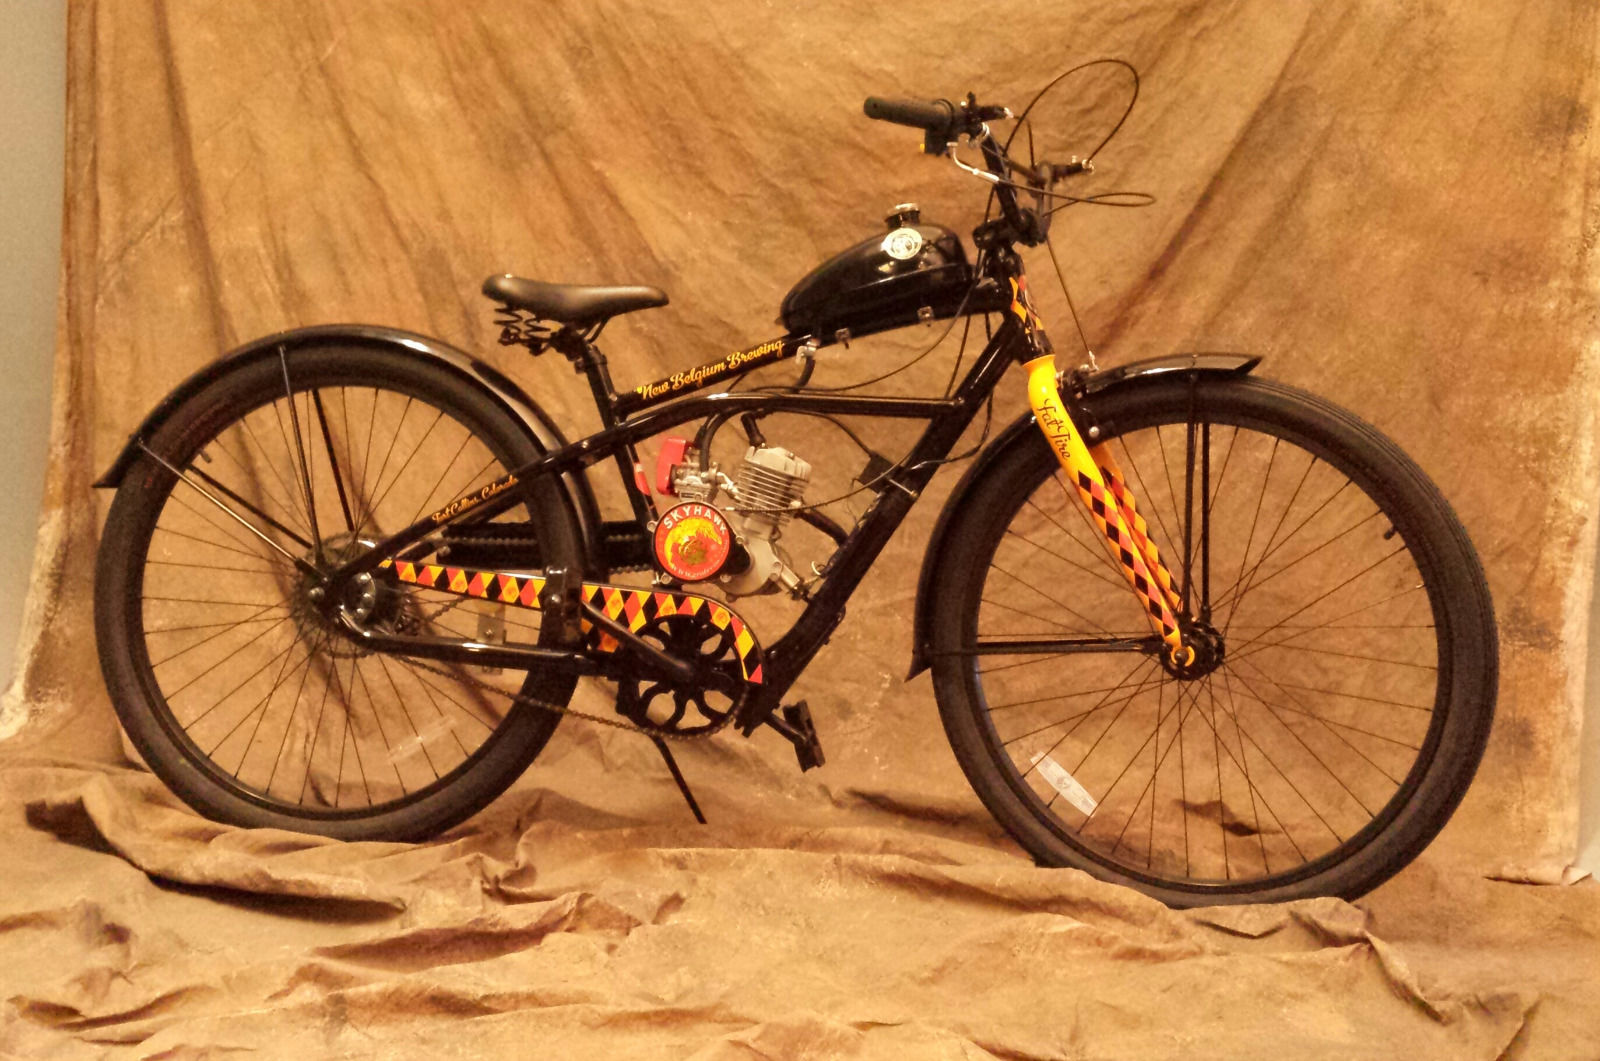 2013 Collectable Fat Tire Bicycle W Motor Kit For Sale